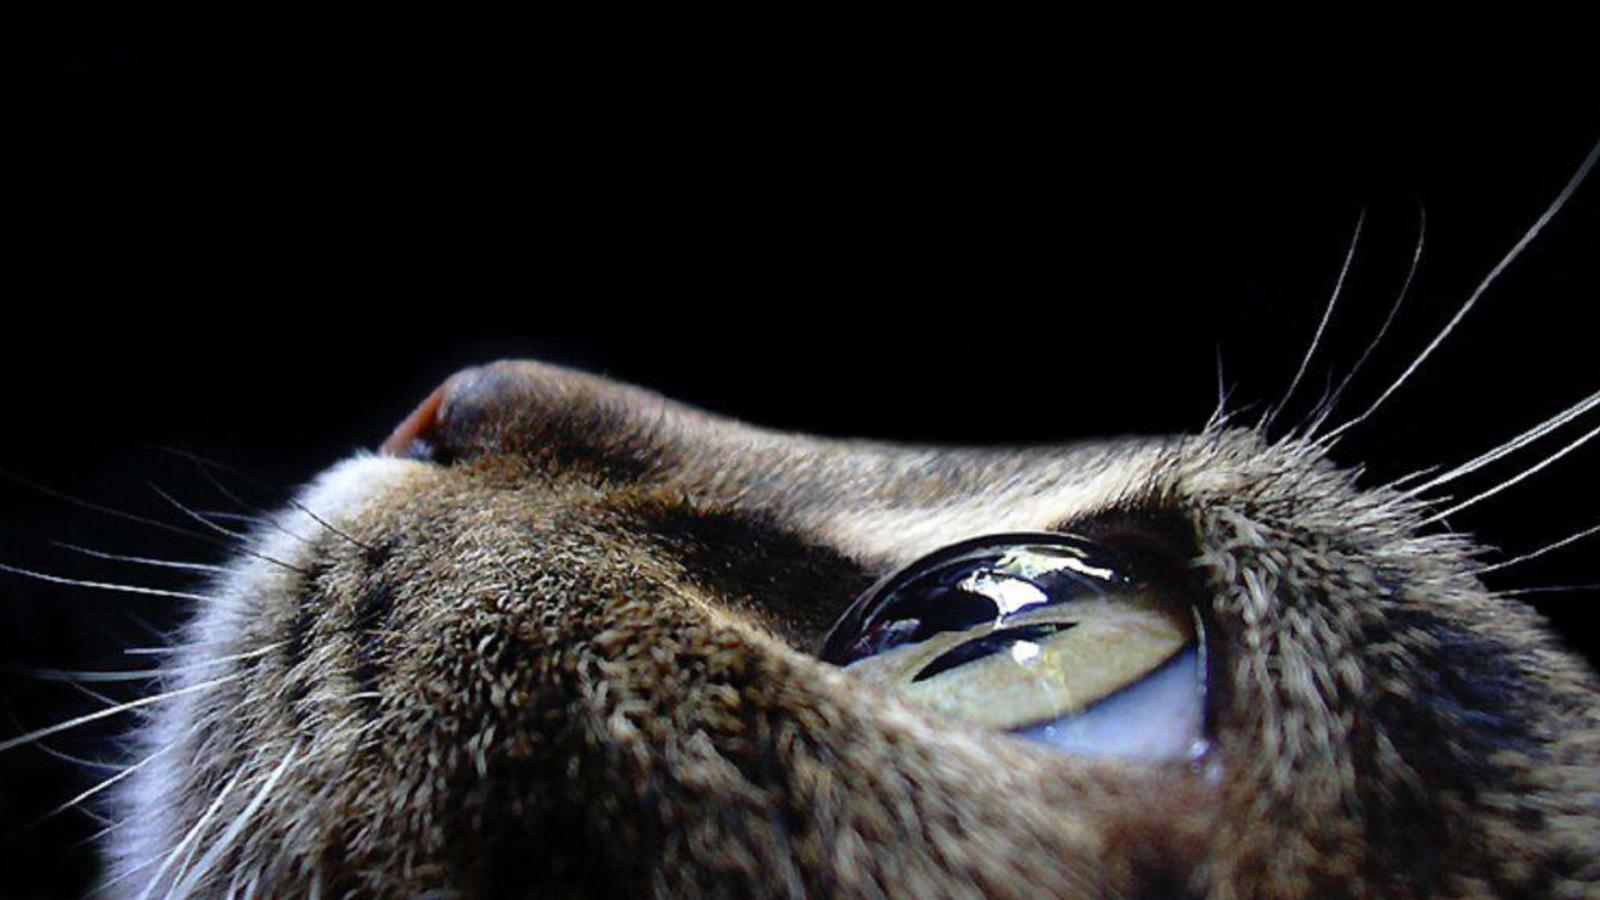 animals-pictures-cat-eyes-macro-photography.jpg